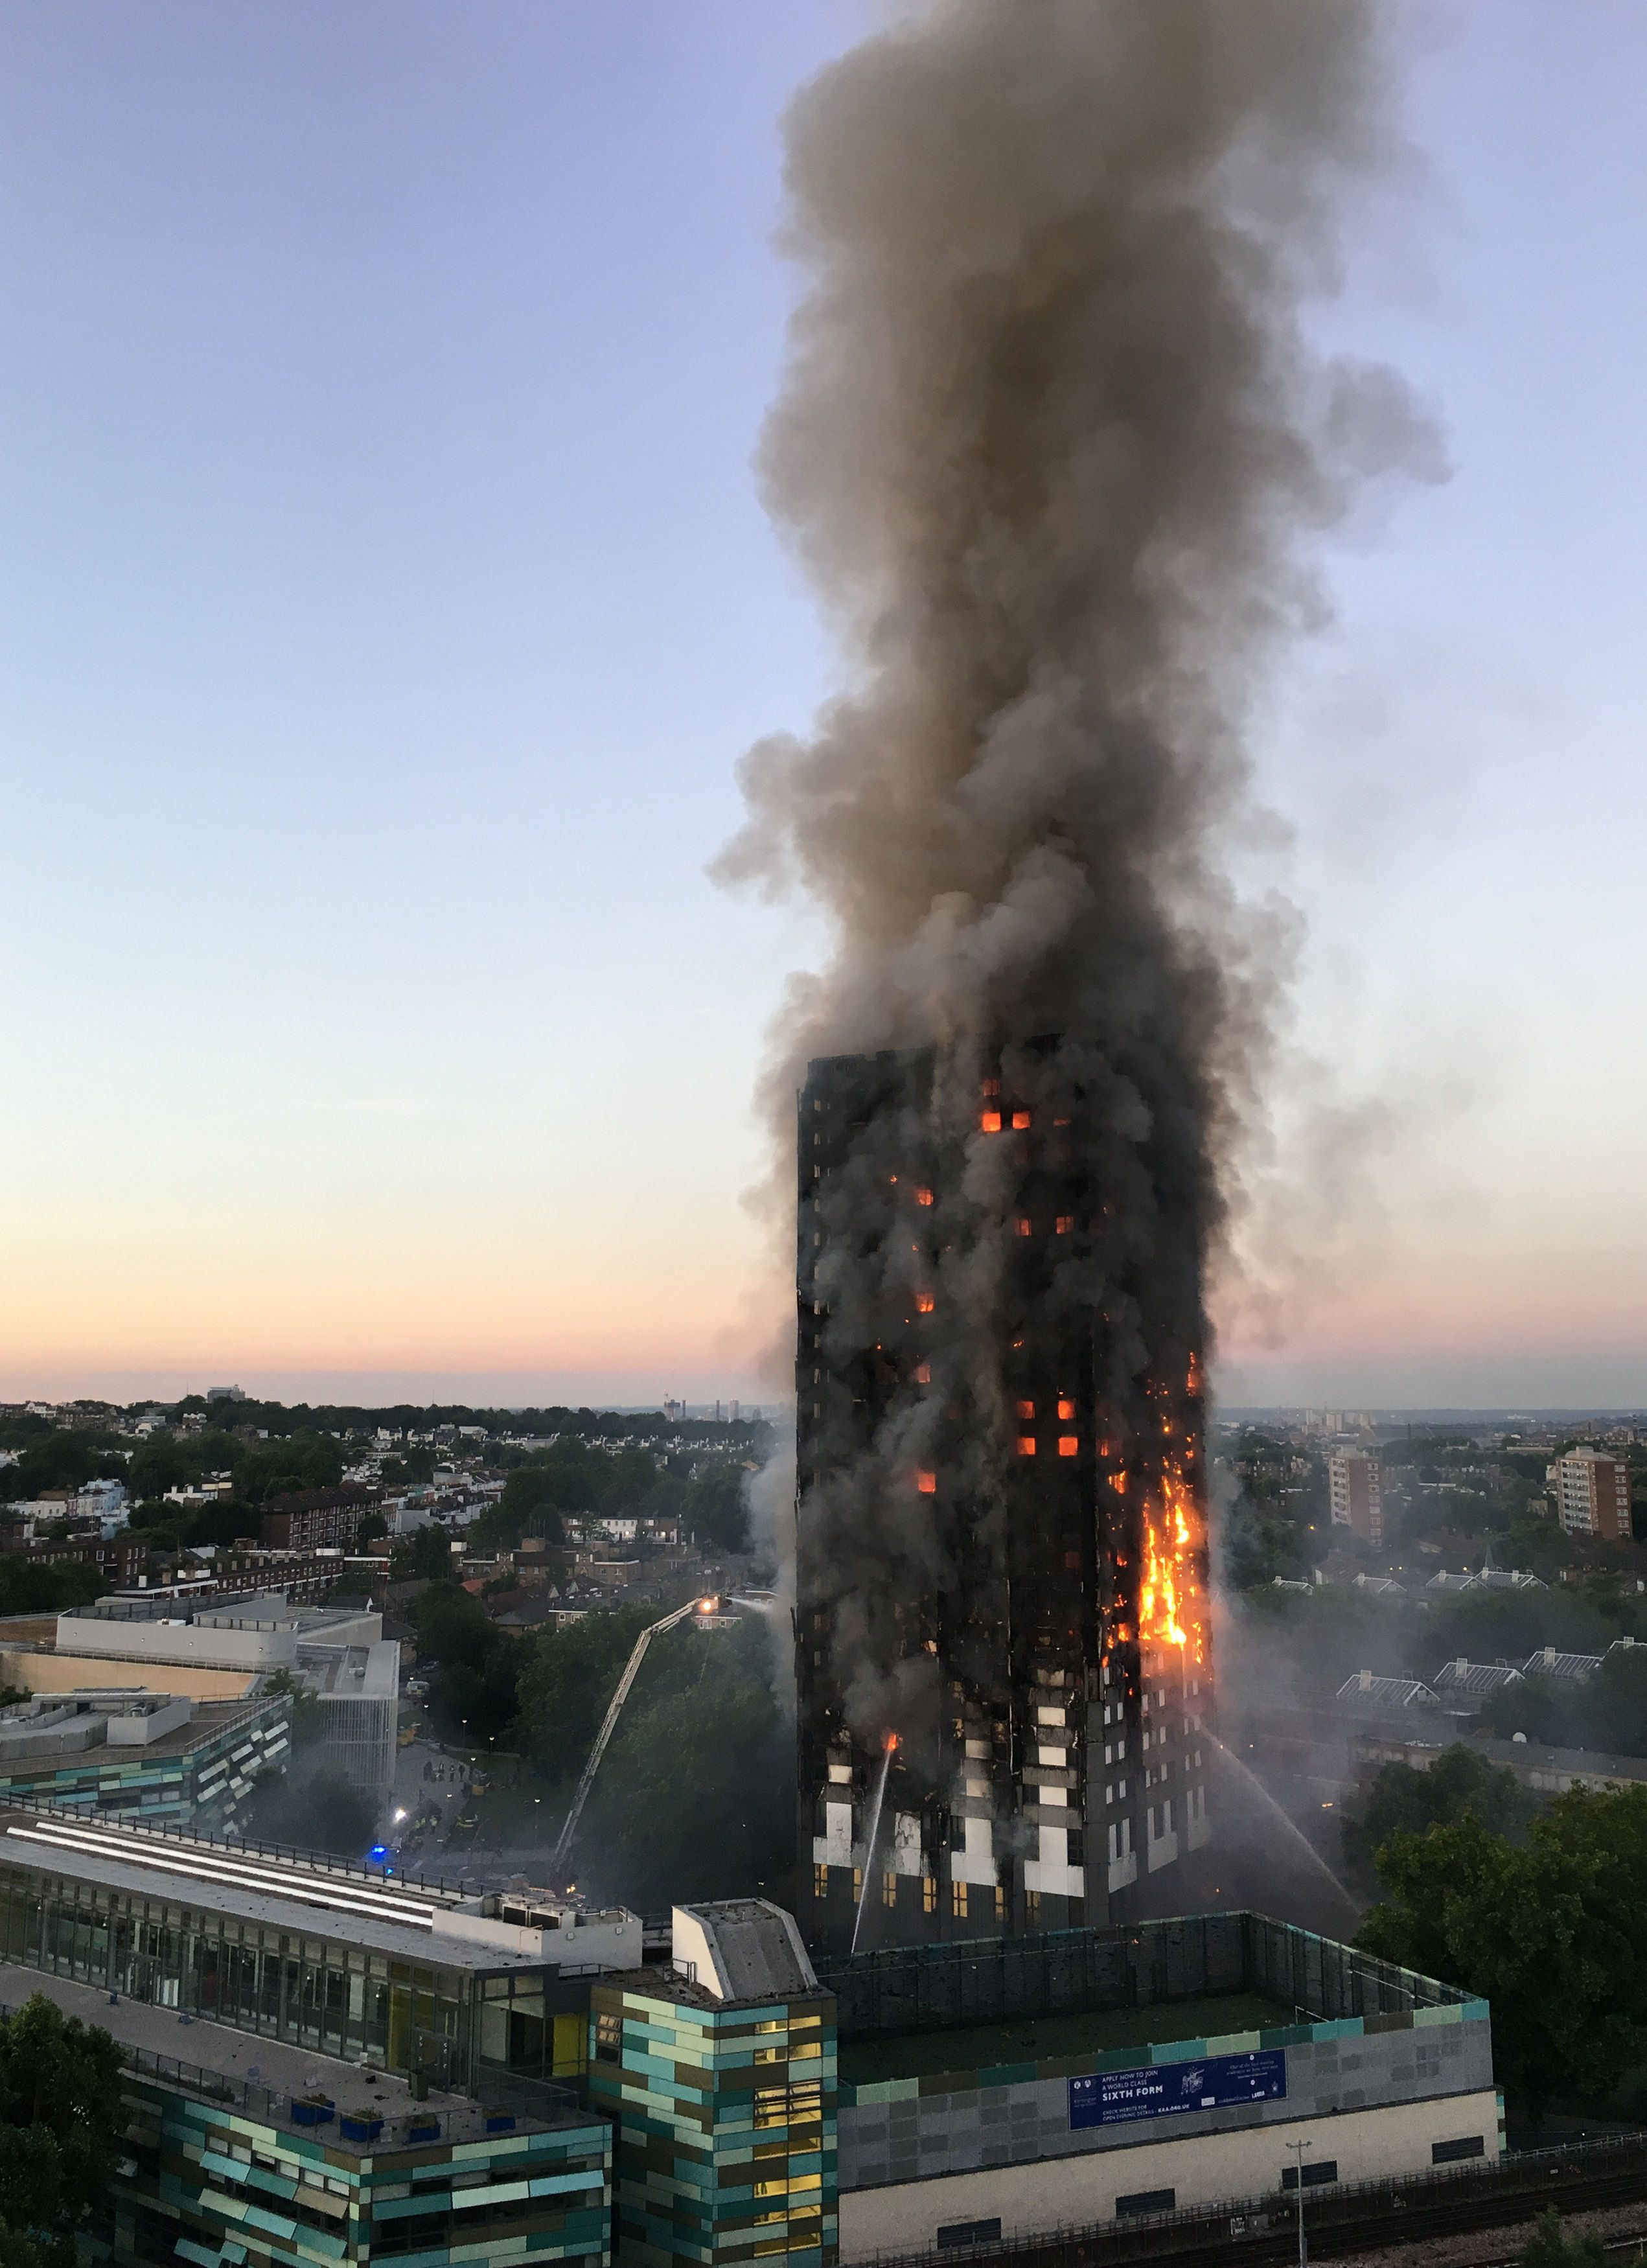 Grenfell Tower: Expert Evidence On The Cause Of The Blaze To Be Published For The First